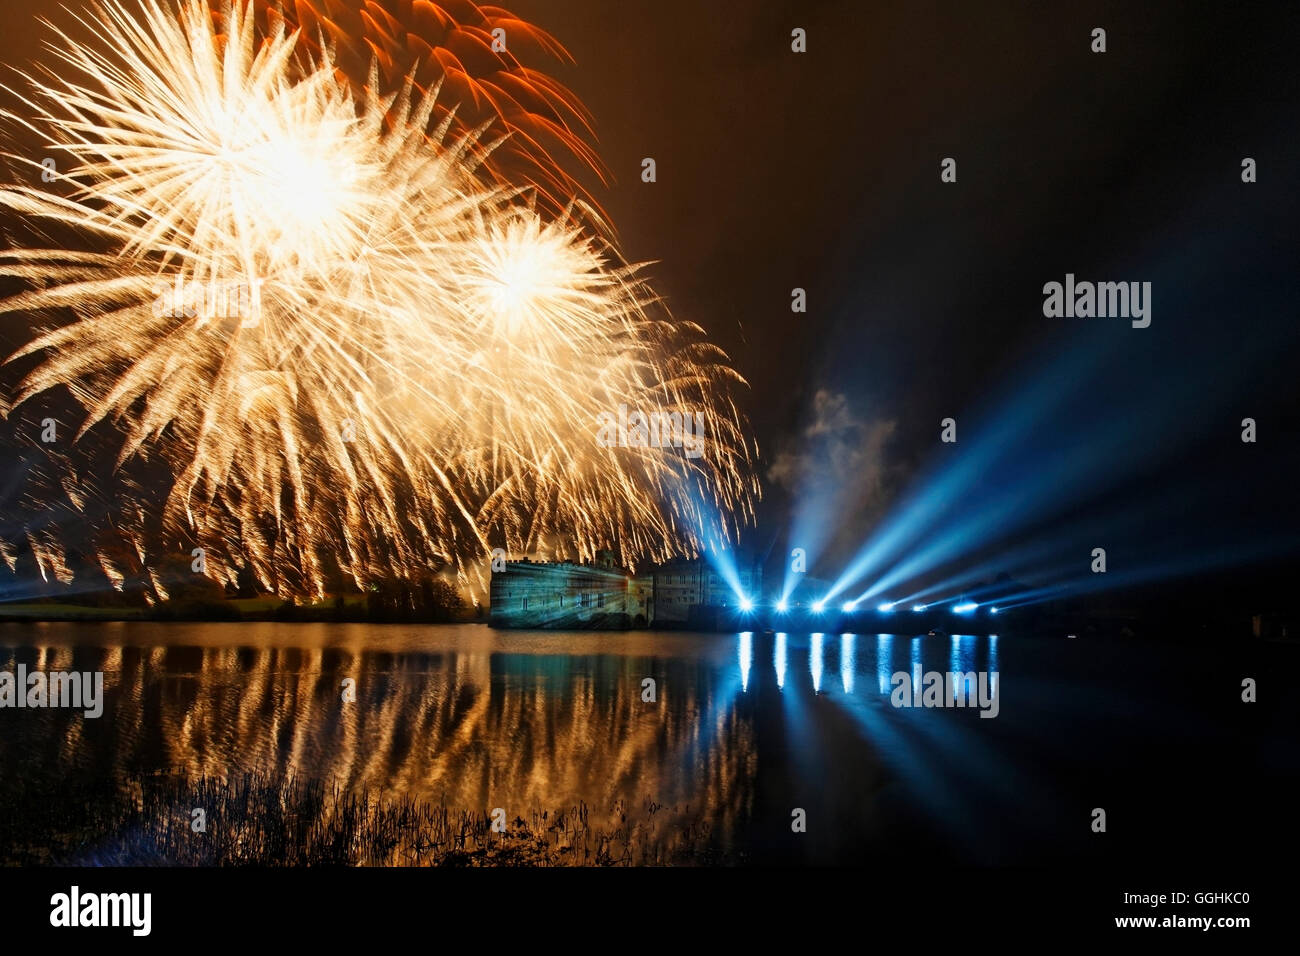 Fireworks at Leeds Castle, Maidstone, Kent, England, Great Britain - Stock Image